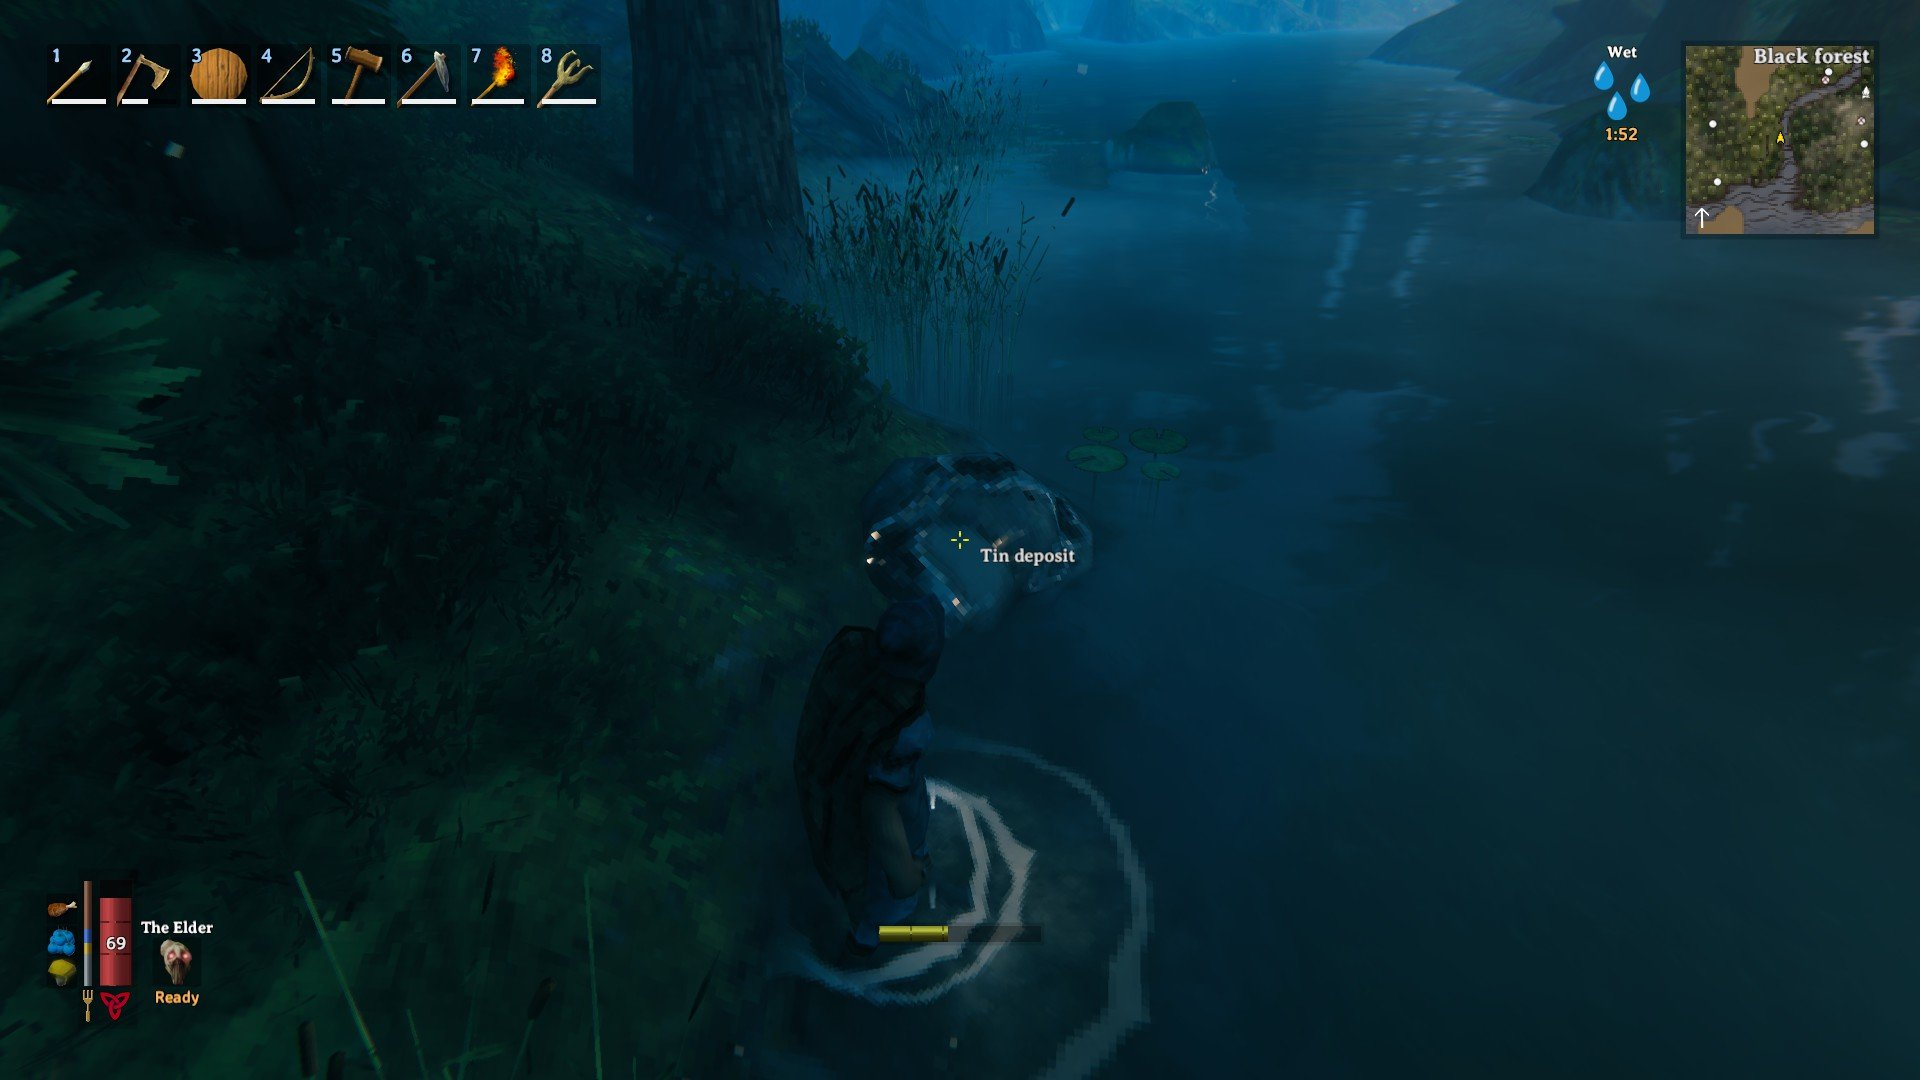 Valheim - Tin Deposit Screenshot